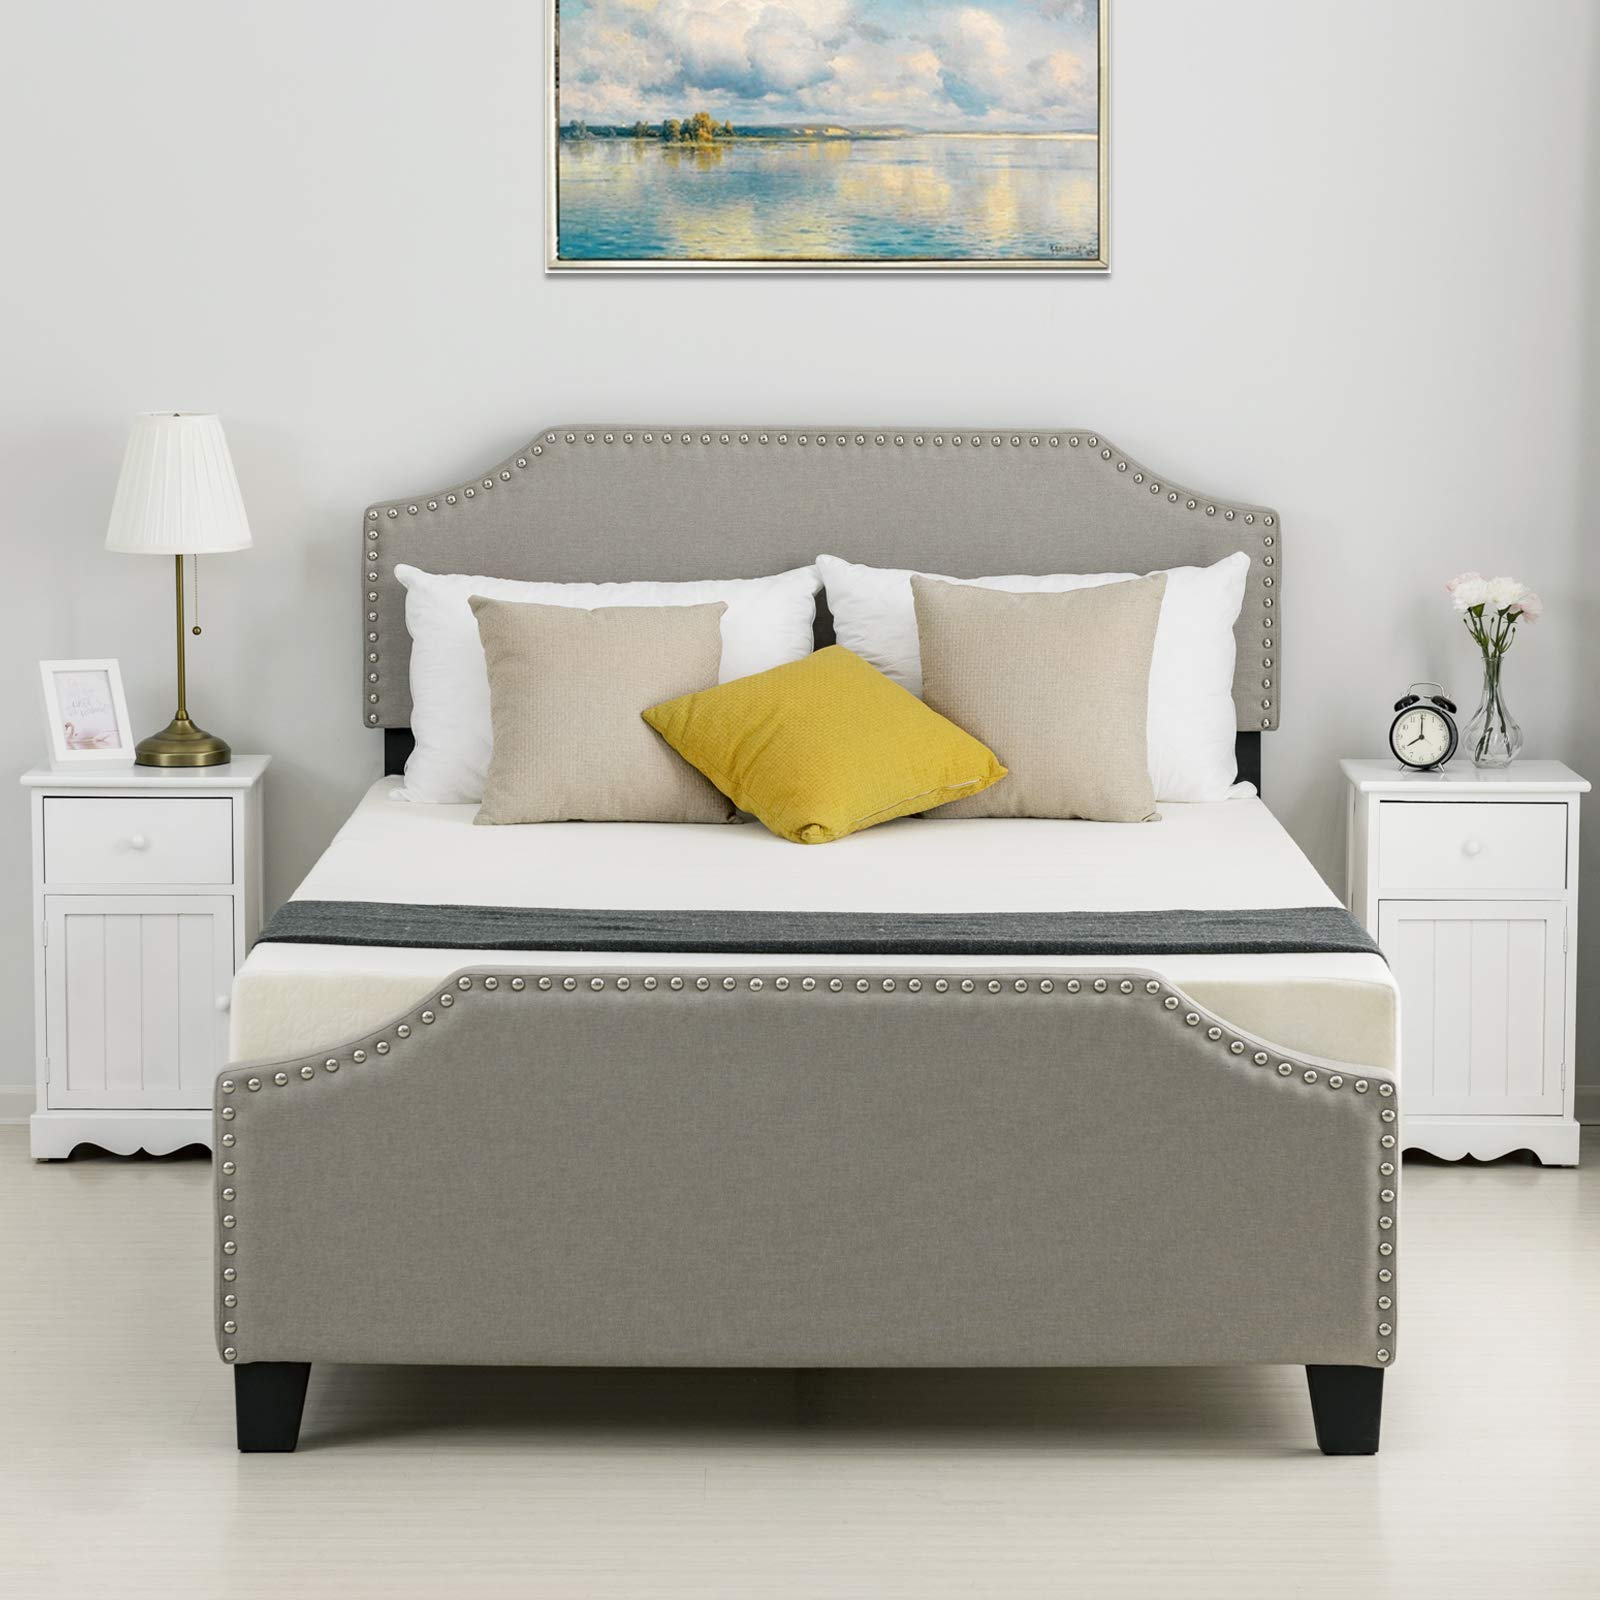 LAGRIMA Upholstered Linen Platform Bed | Curved Shape Headboard, Footboard and Metal Frame with Sticky Wood Slat Support | Khaki, Queen